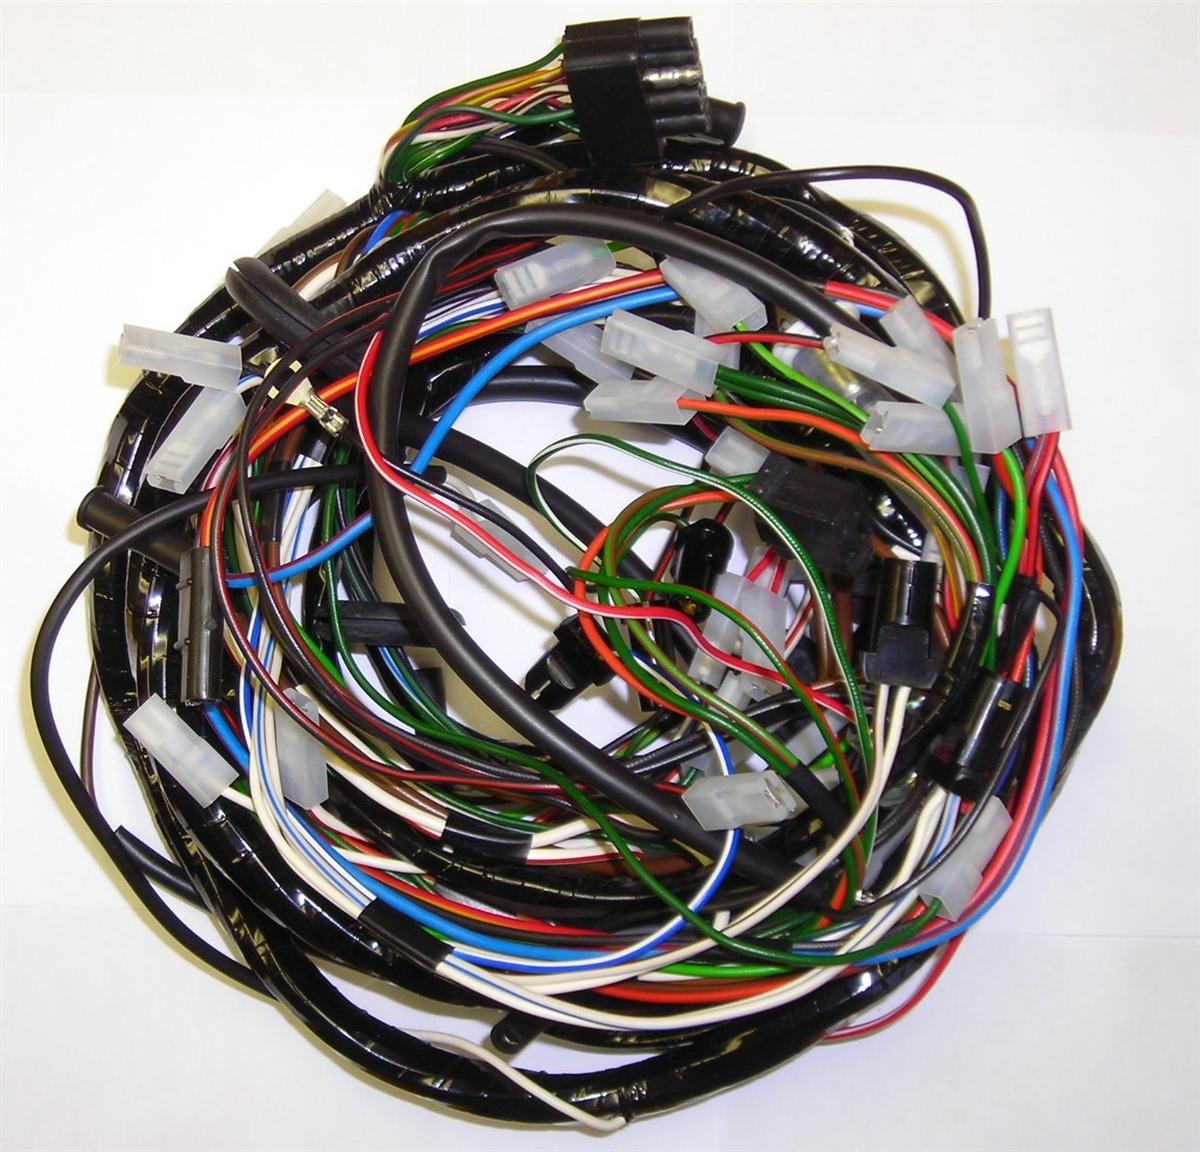 hight resolution of land rover series 3 main wiring harness land rover series 3 wiring harness for sale series 3 land rover wiring harness